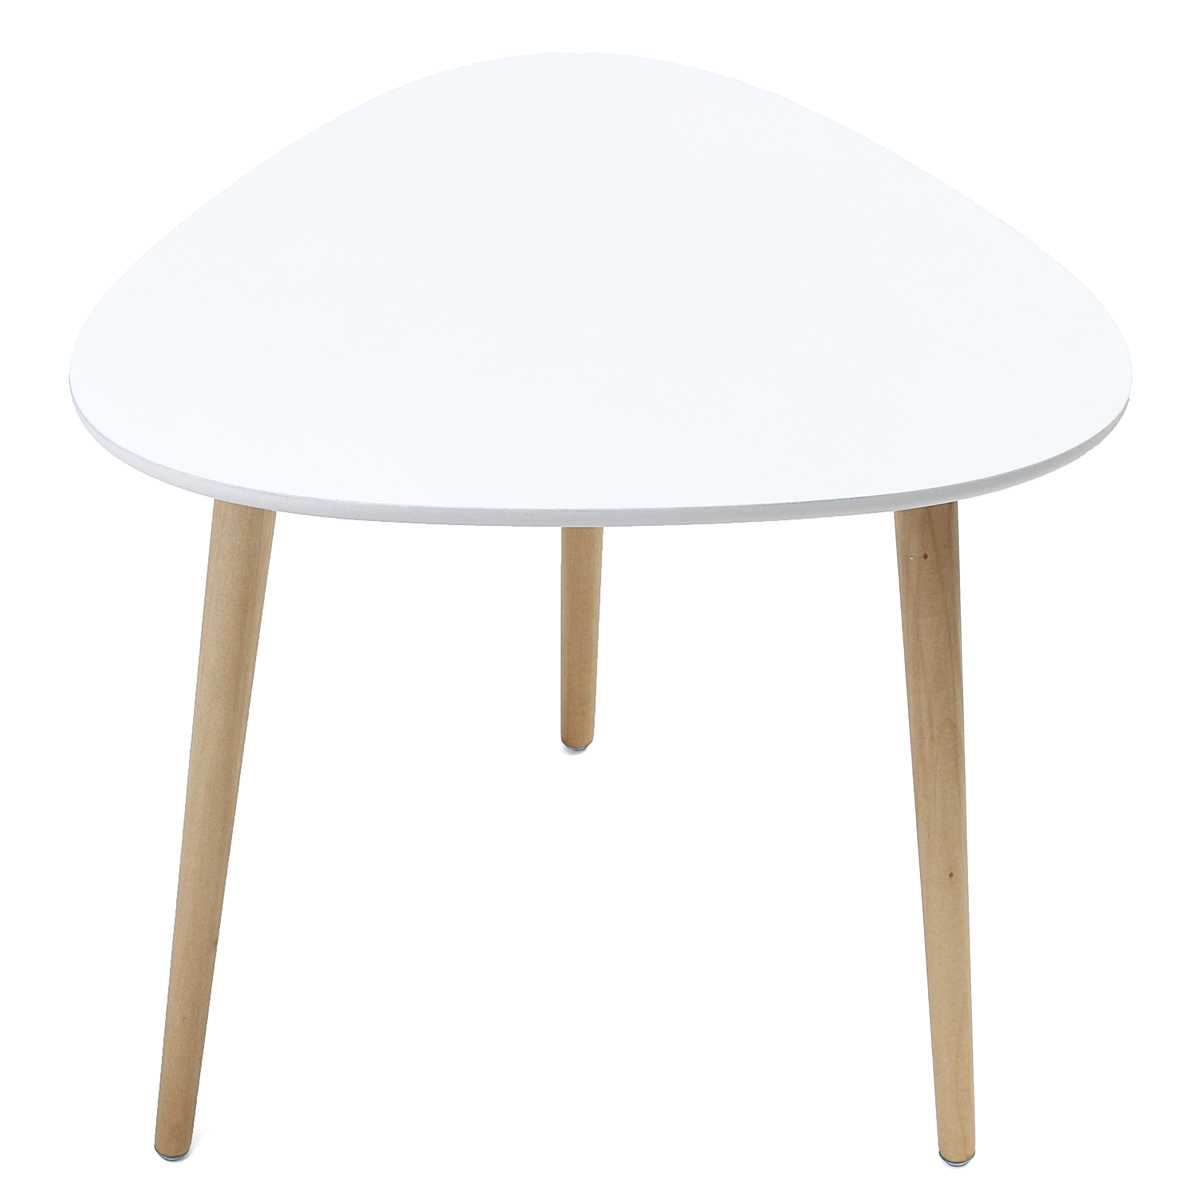 Bedside Round Table.Bedside Round Triangle Dining Table Coffee Desk 50x49cm Wood Legs Home Office Funiture Bar Cafe Furniture Decoration